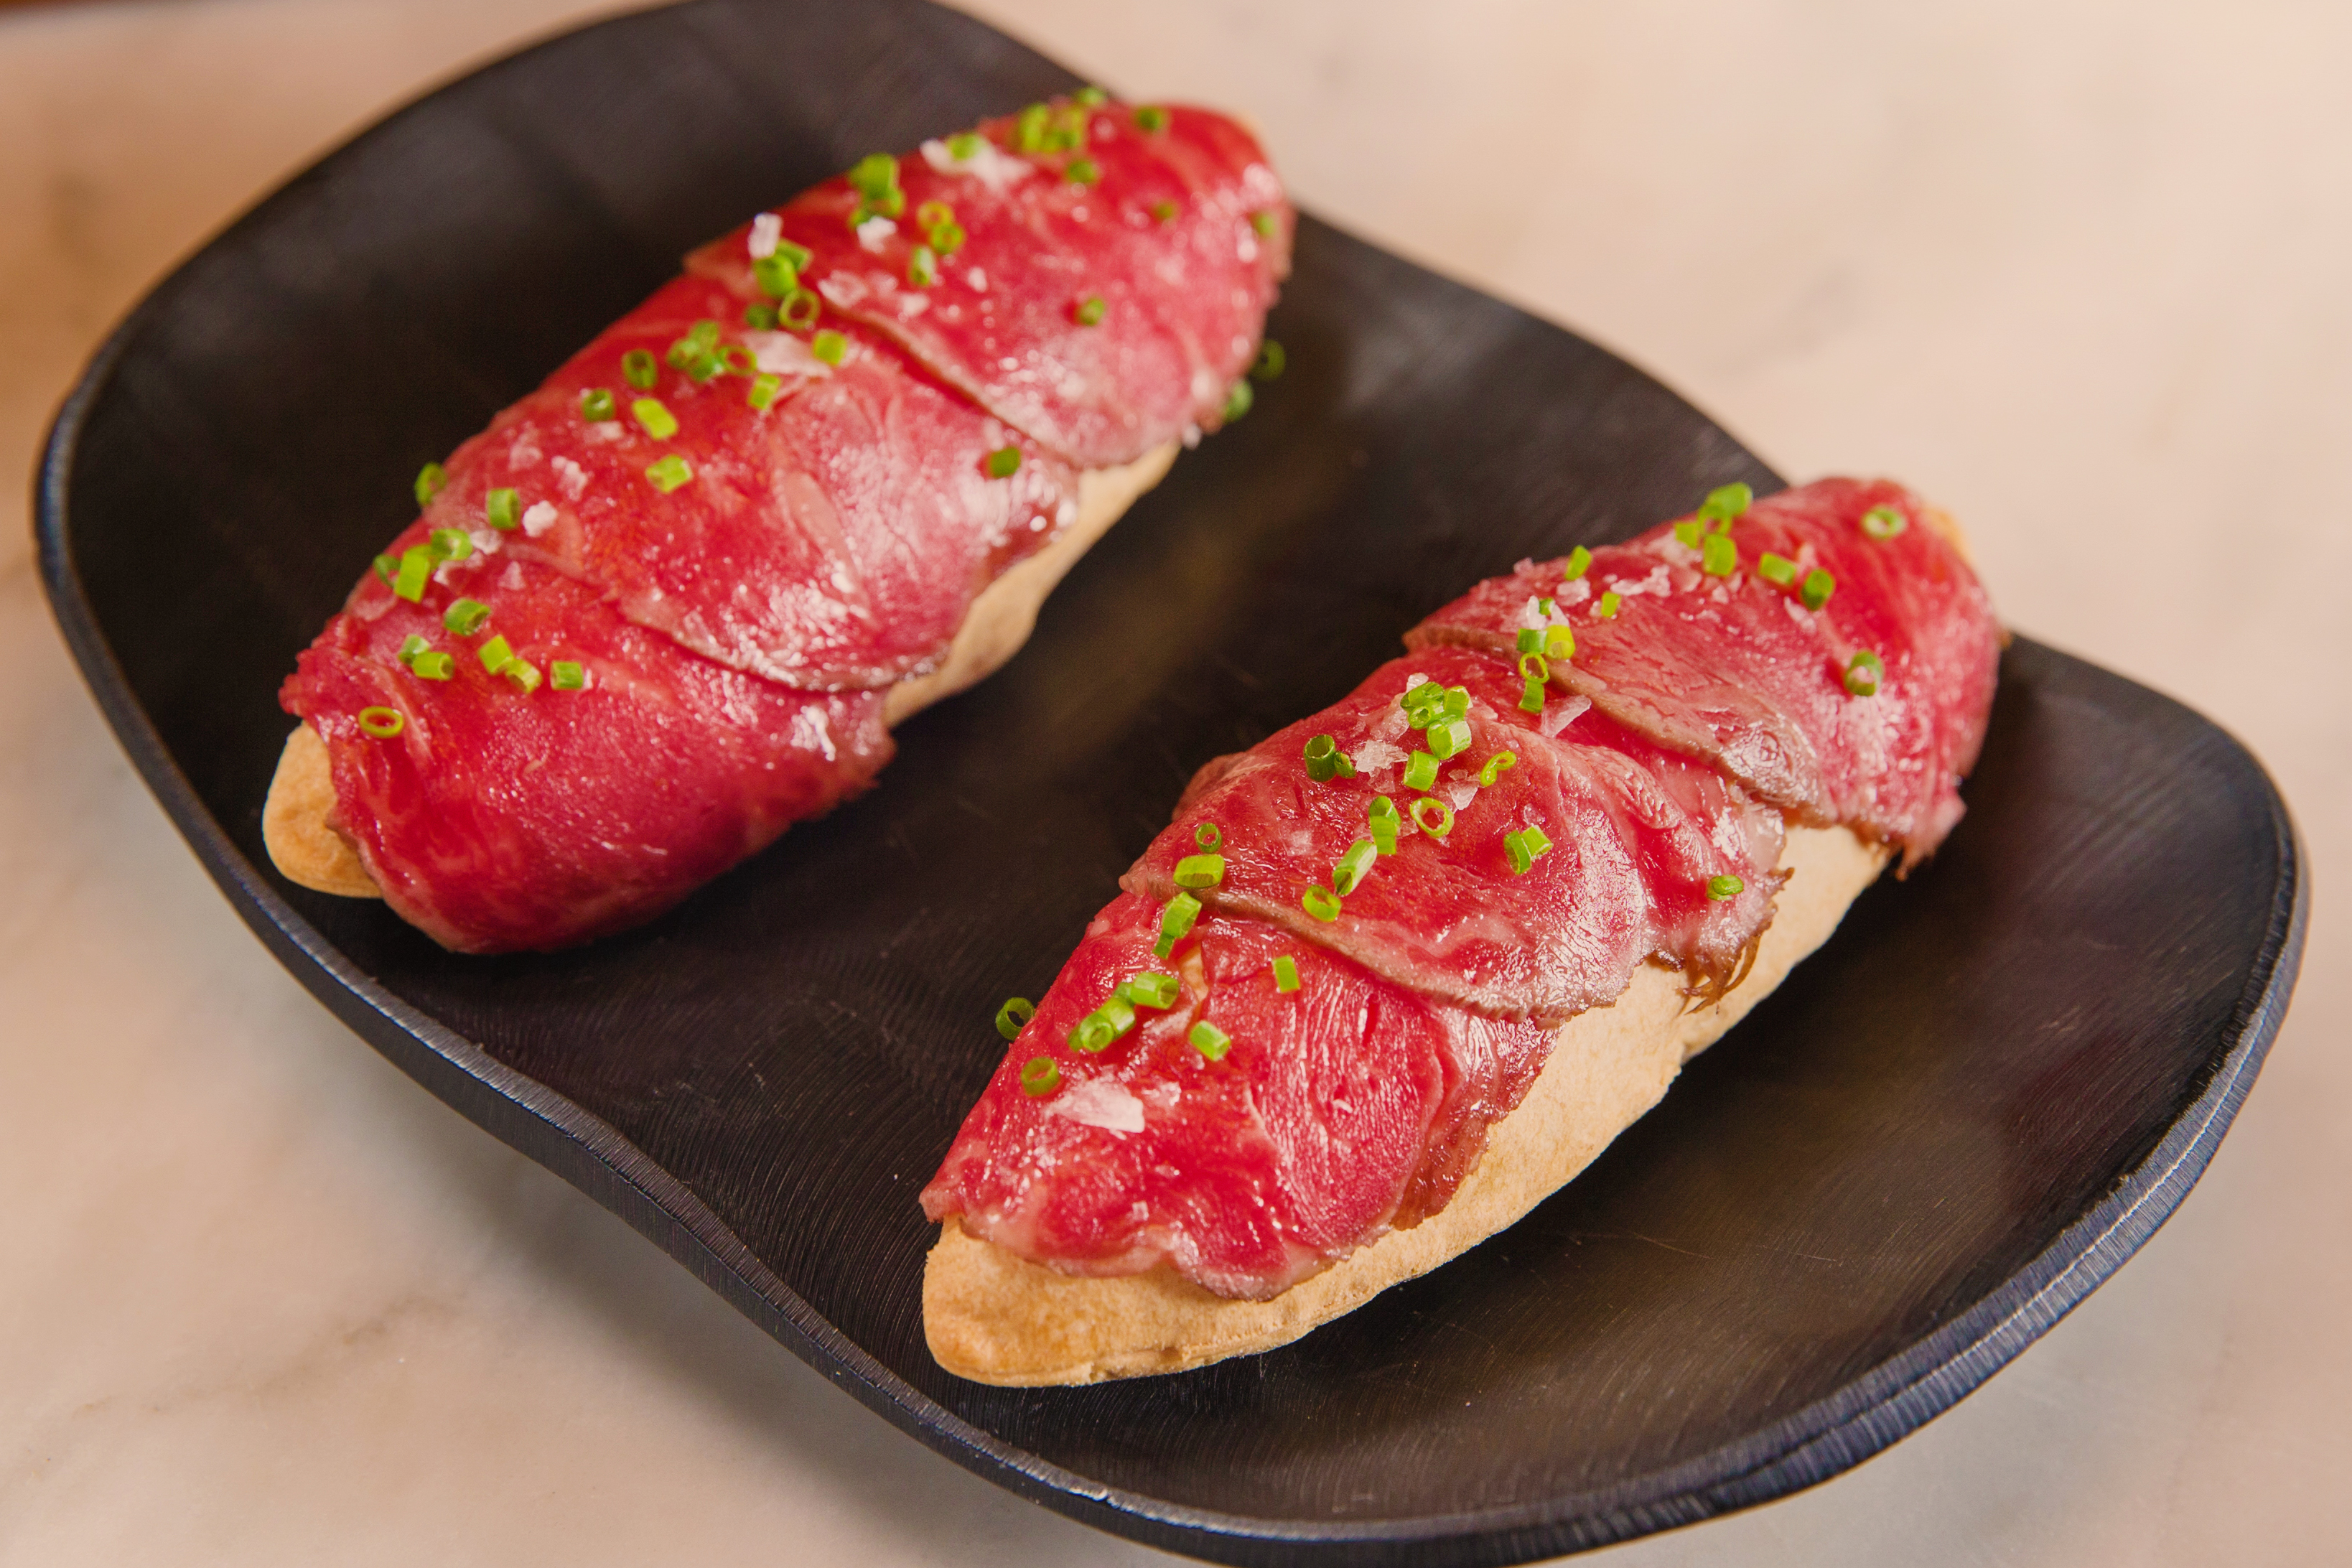 Two rolls with thinly sliced meat on top